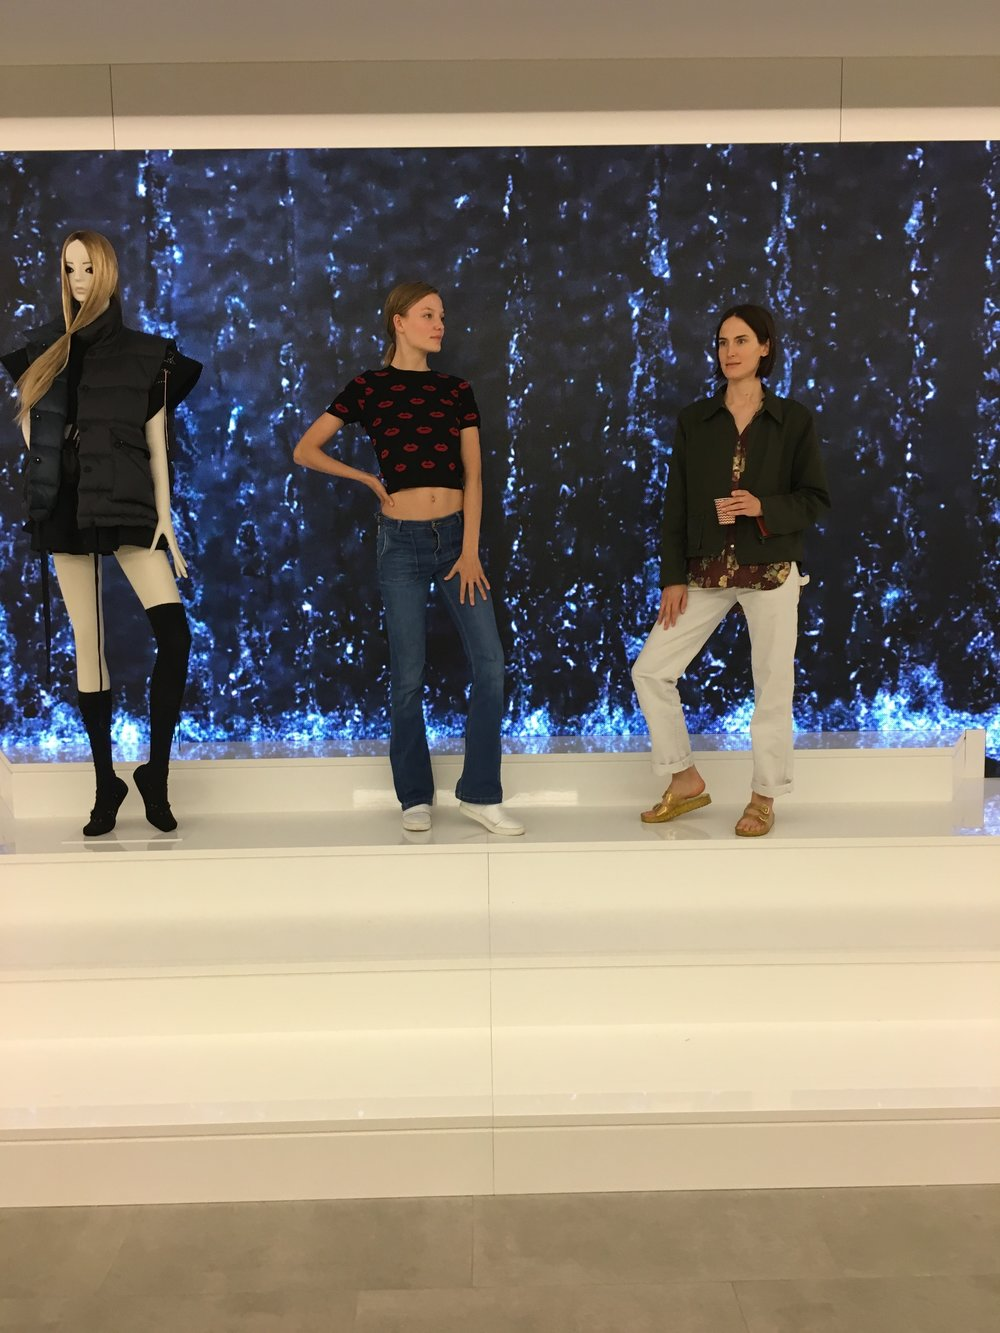 Zara has mock stores under their offices, for practice and layout blueprints. Here the models I worked alongside that week are standing in the mock store window.